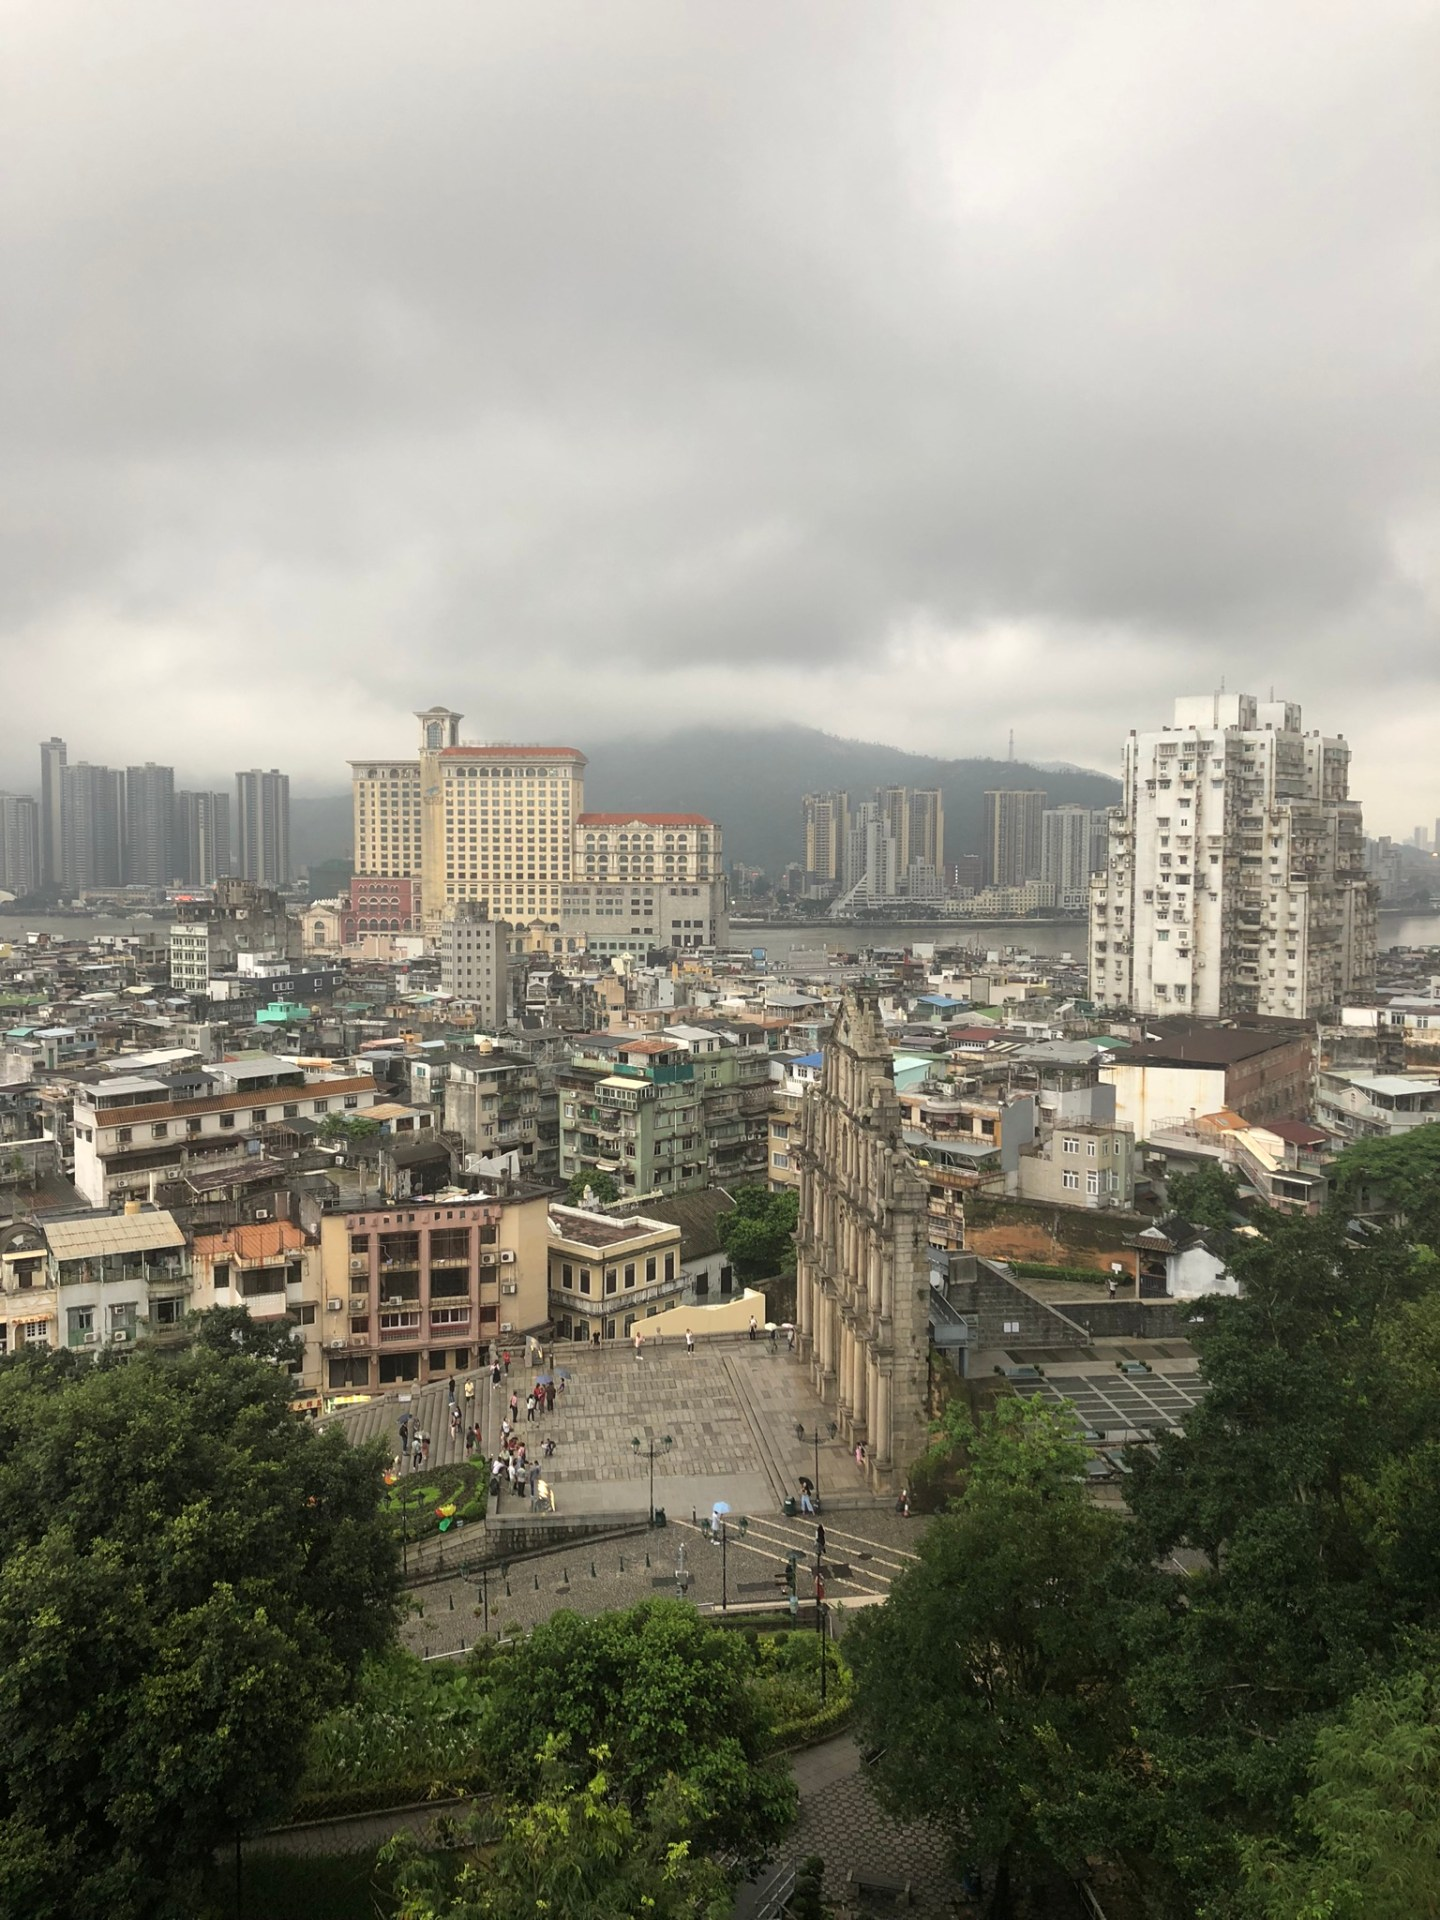 Views across Old Town Macau